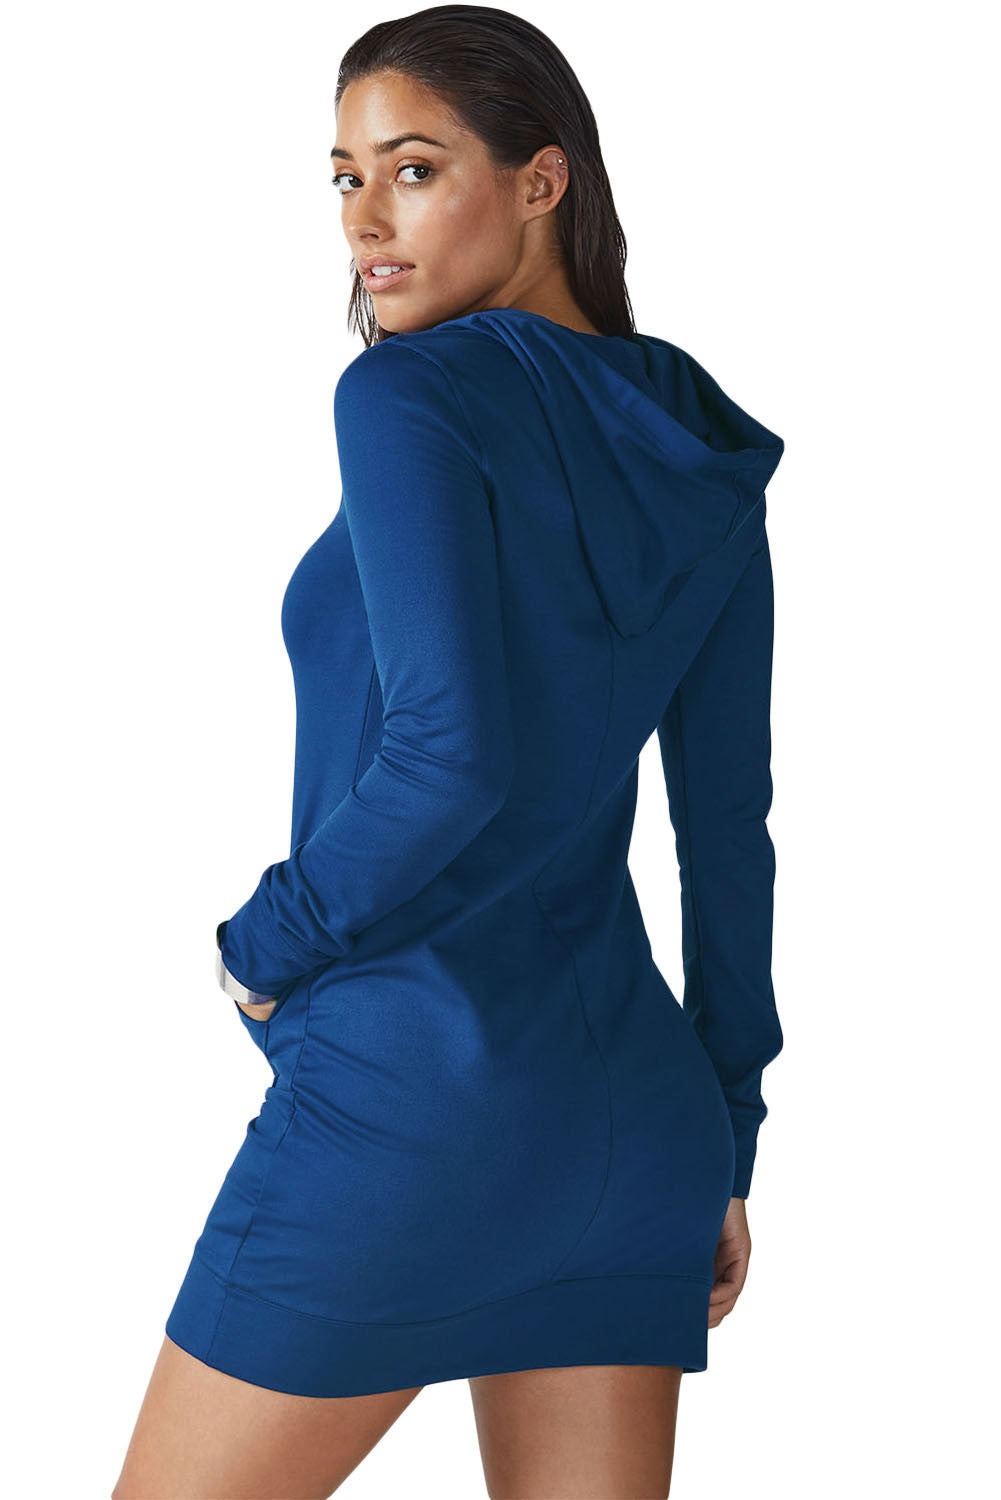 Blue Slim Fit Hoodie Mini Dress - Front Pocket